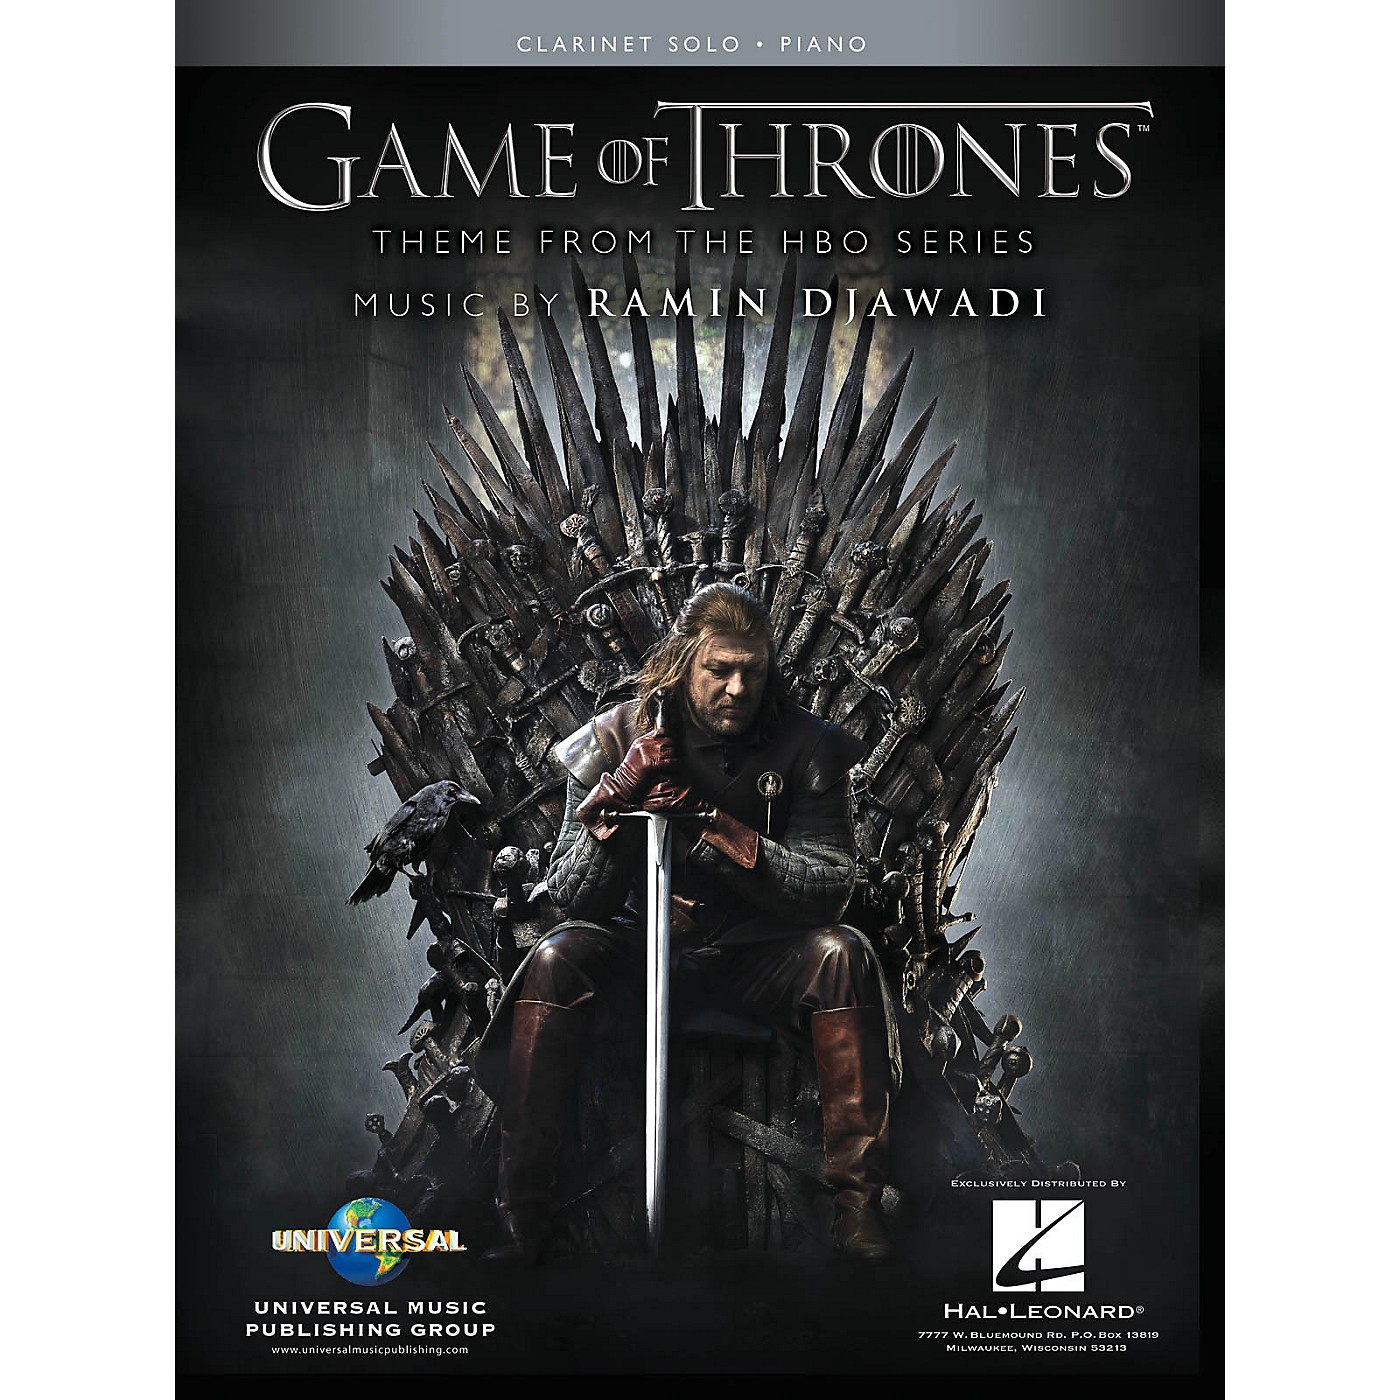 Hal Leonard Game of Thrones for Clarinet & Piano (Theme from the HBO Series) Instrumental Solo thumbnail